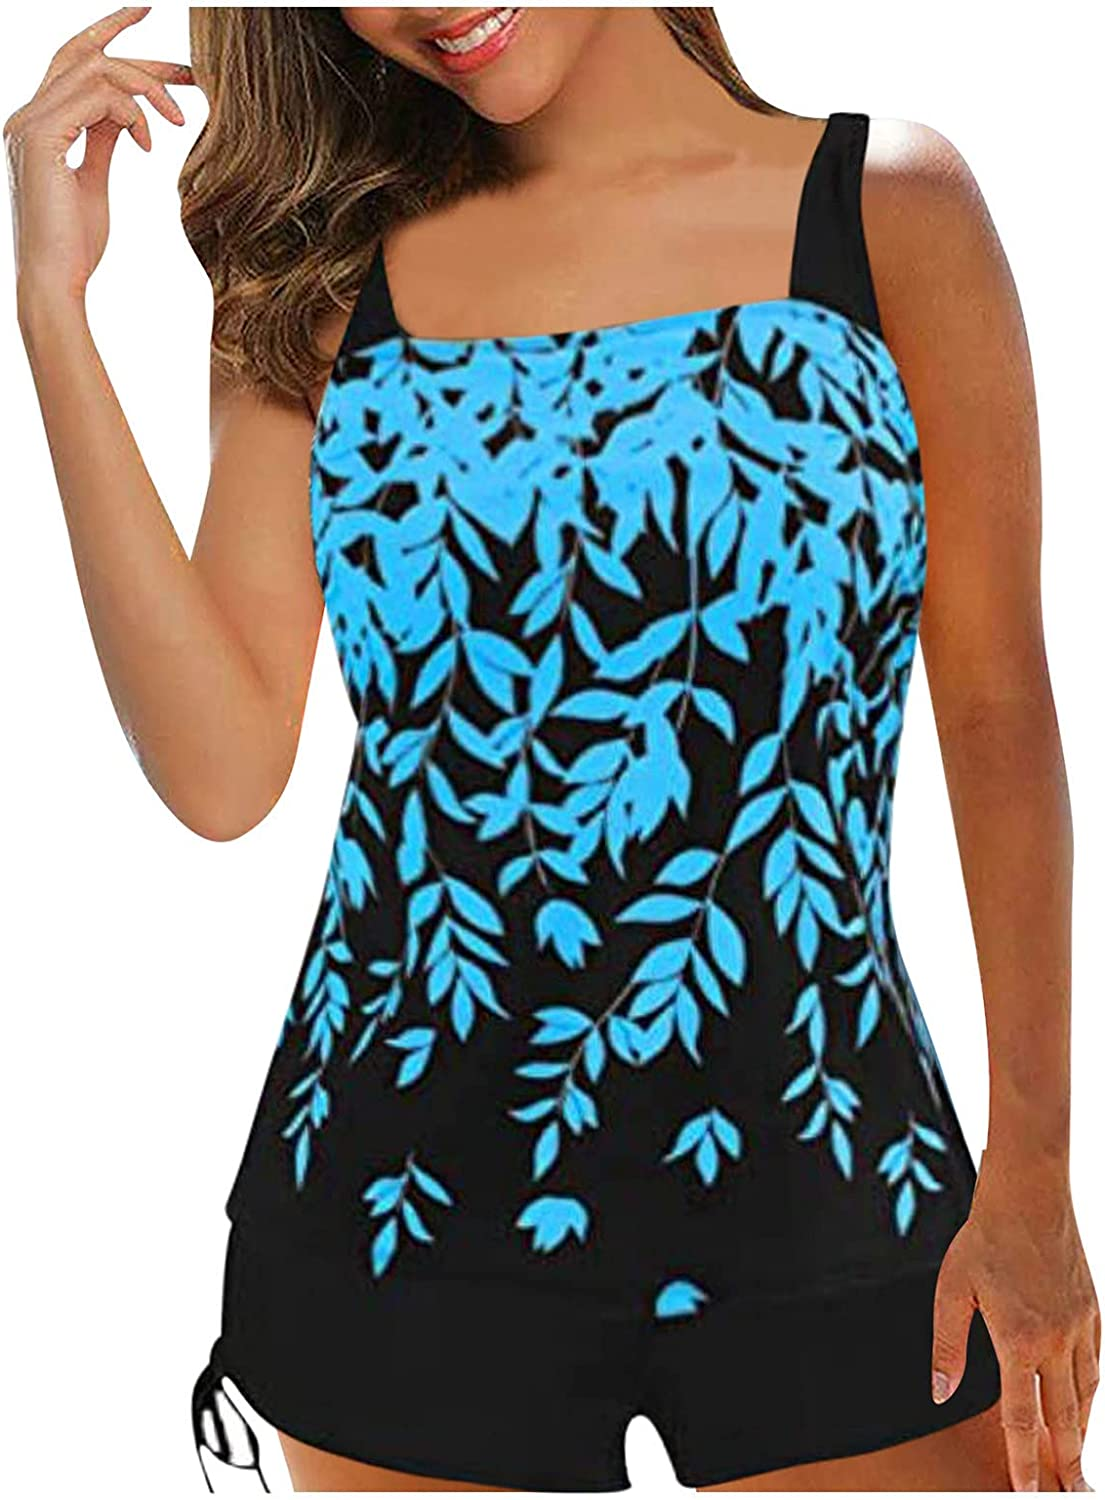 Bilibird Swimsuit for Women,Summer Bathing Suit Plus Size Print Strappy Back Tankini Set Two Piece Swimsuits Swimdress